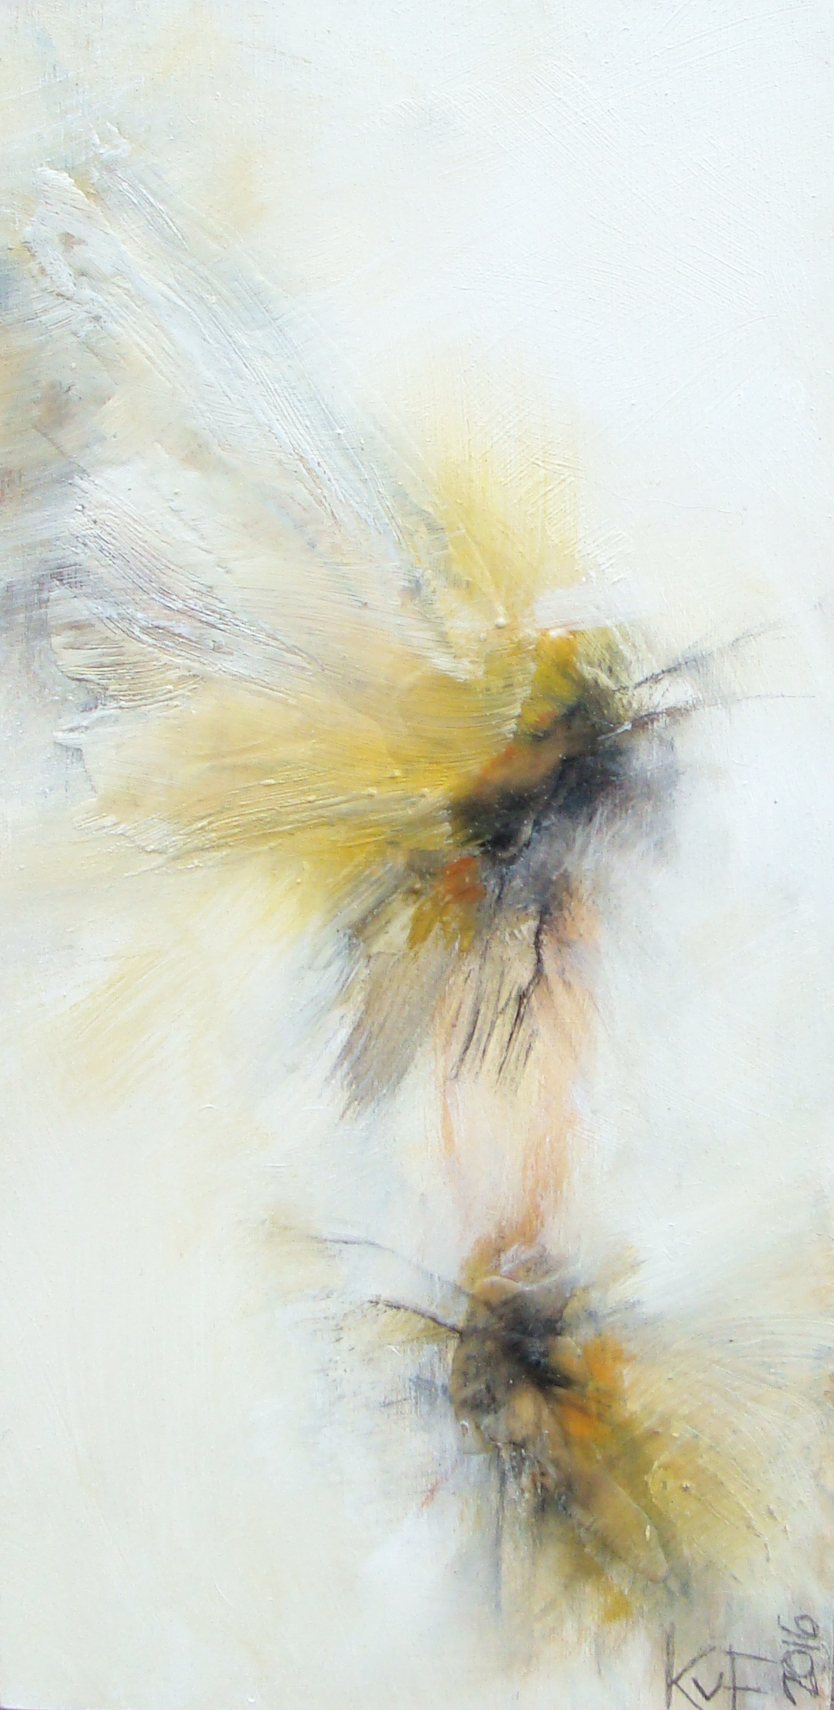 """little flying insects -  oil, wax, charcoal on wood panel, 12x6"""", 2016, SOLD"""